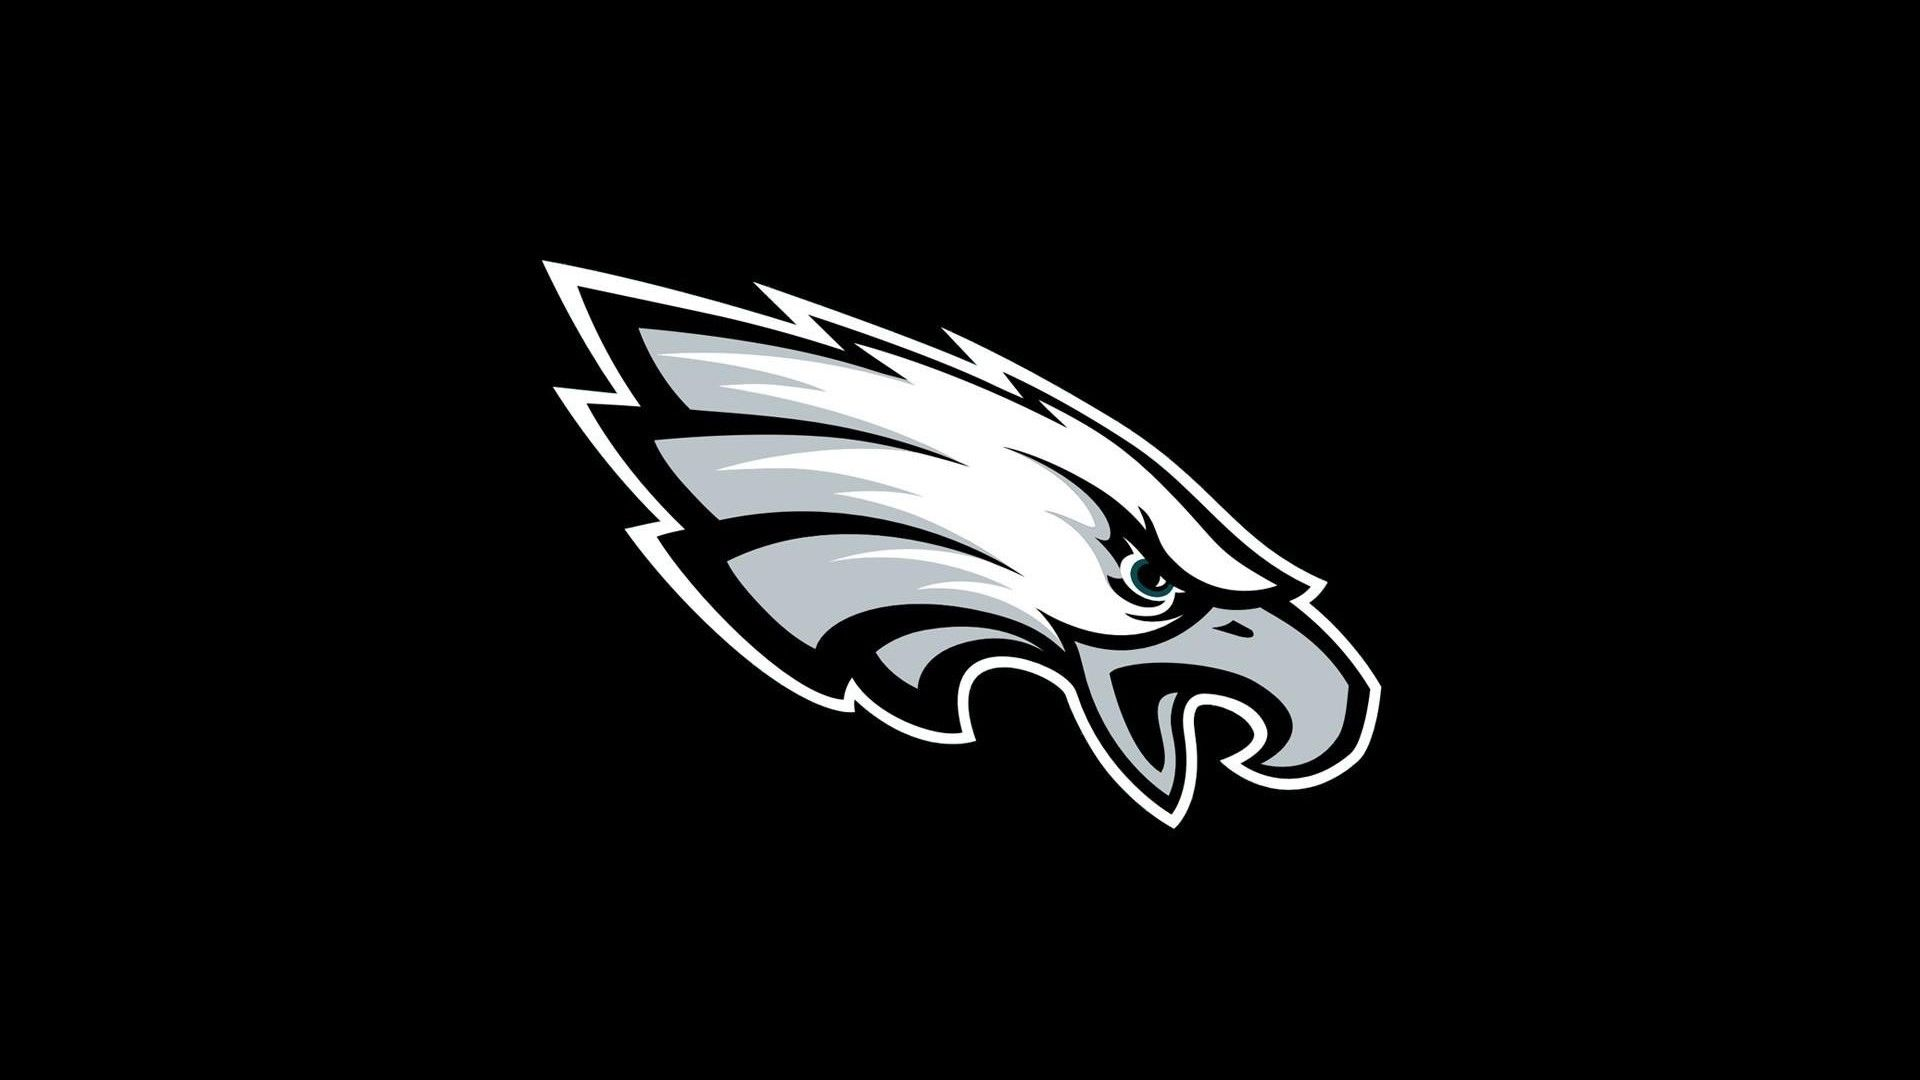 NFL Eagles Wallpaper HD | Best NFL Wallpapers